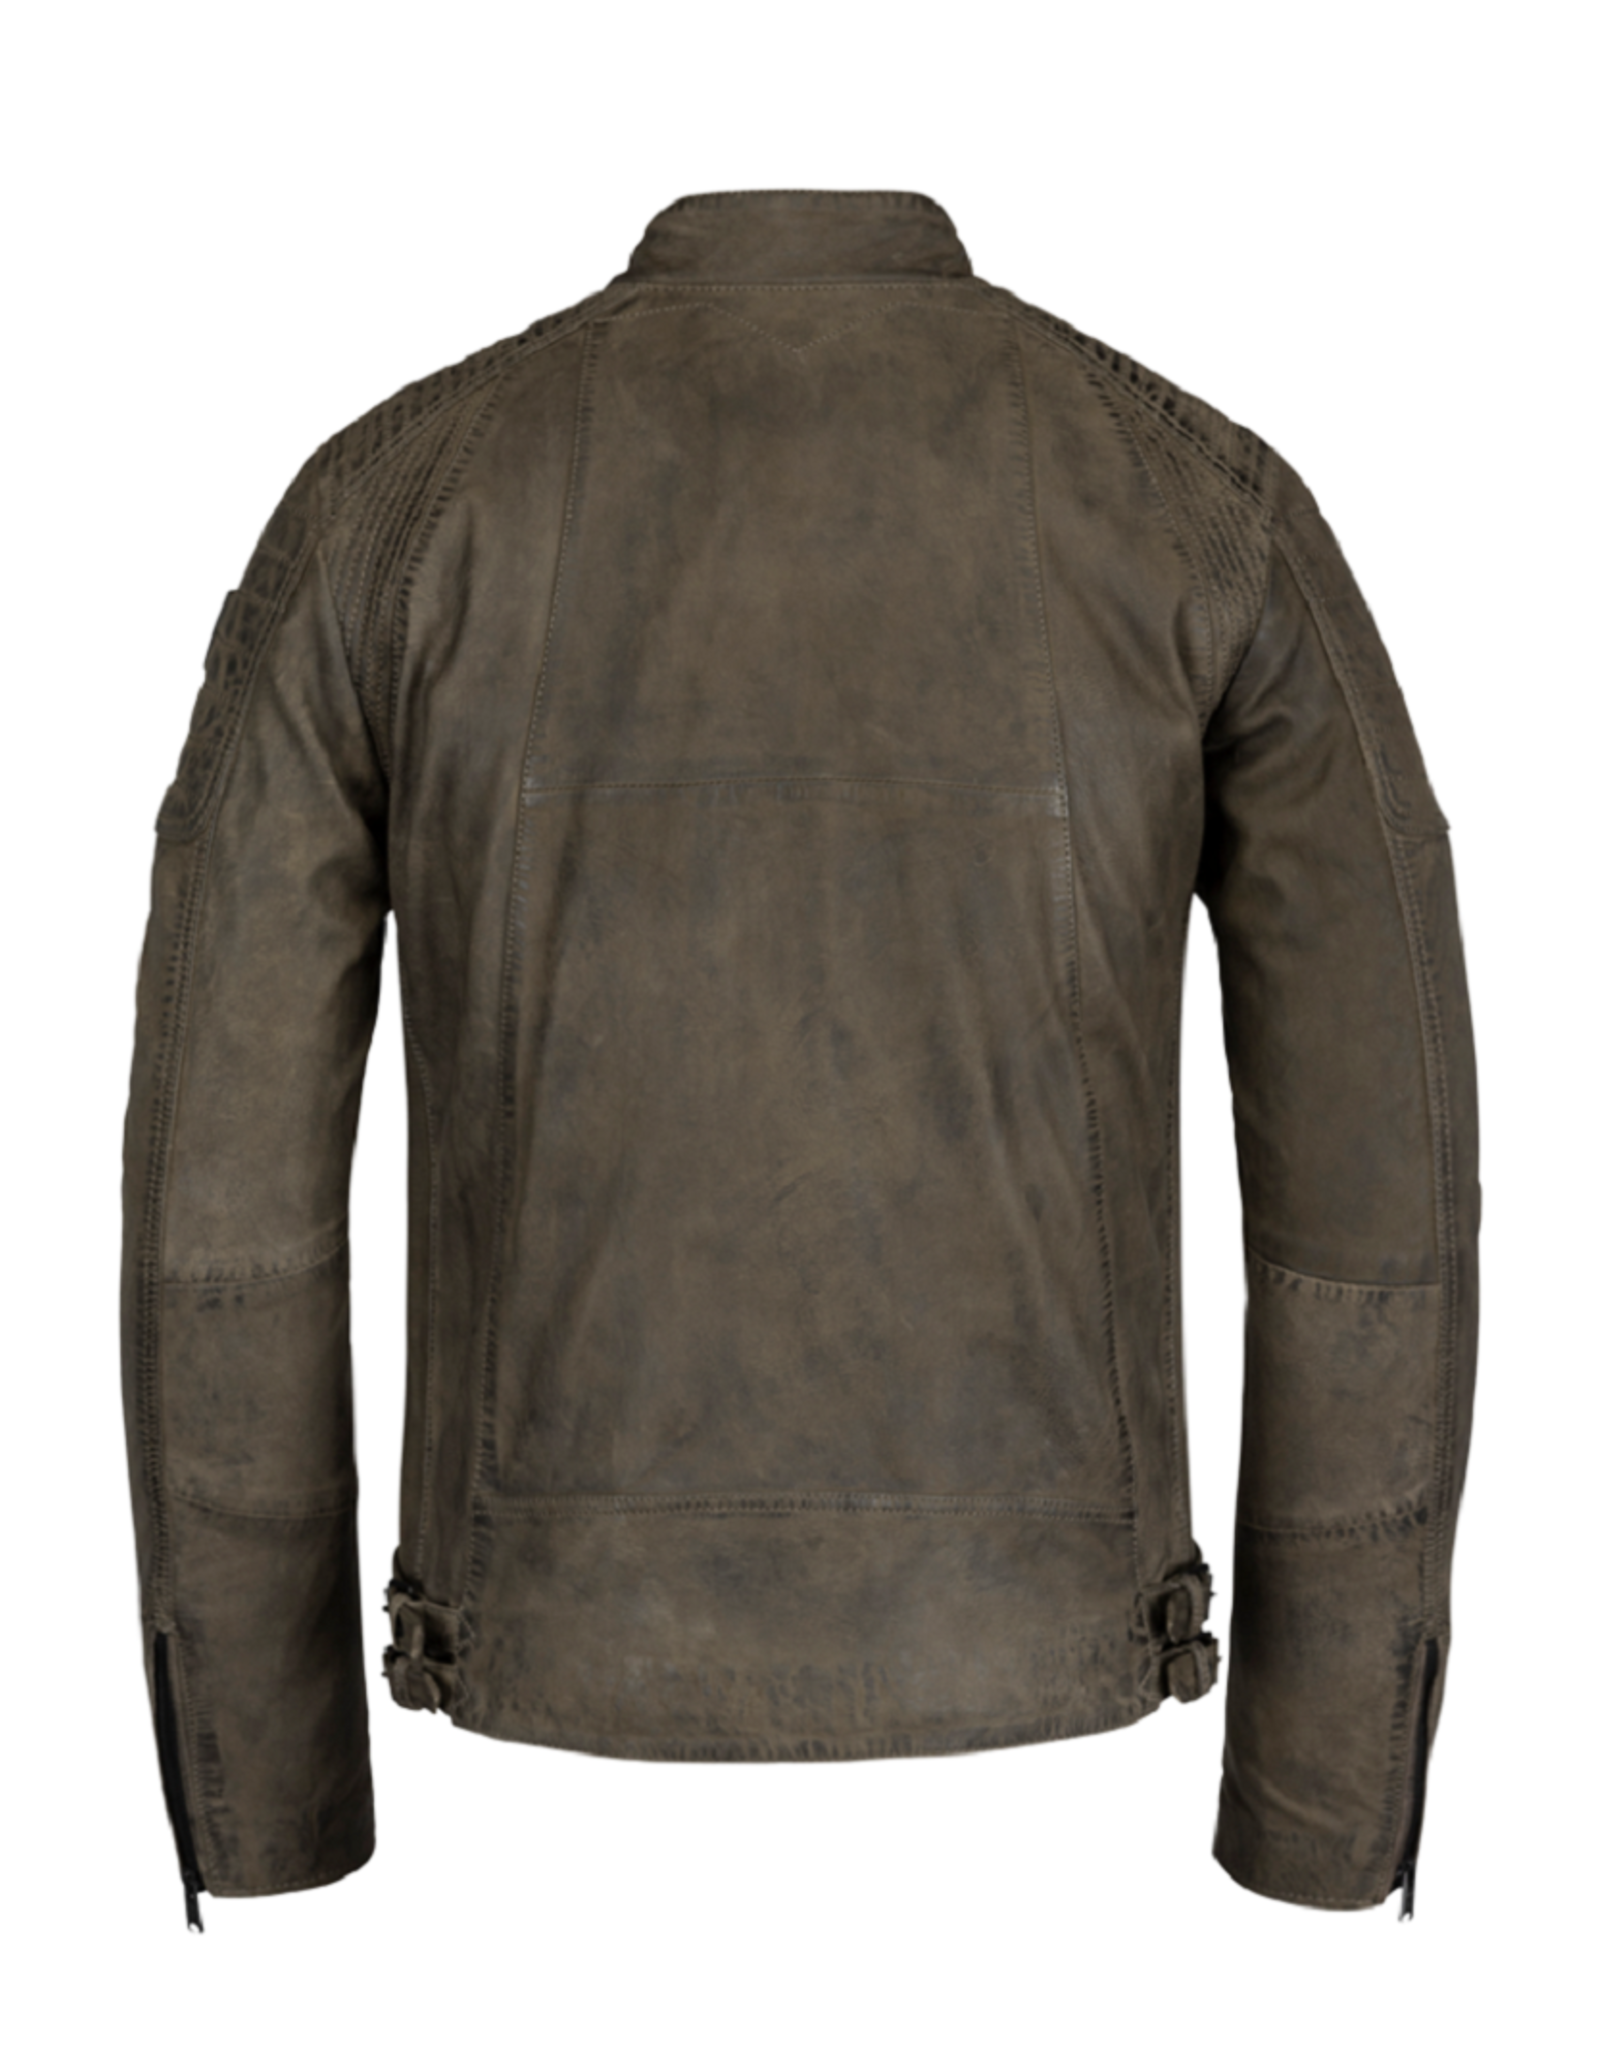 Vanguard Vanguard short sheep veg snuffed Leather jacket  8038